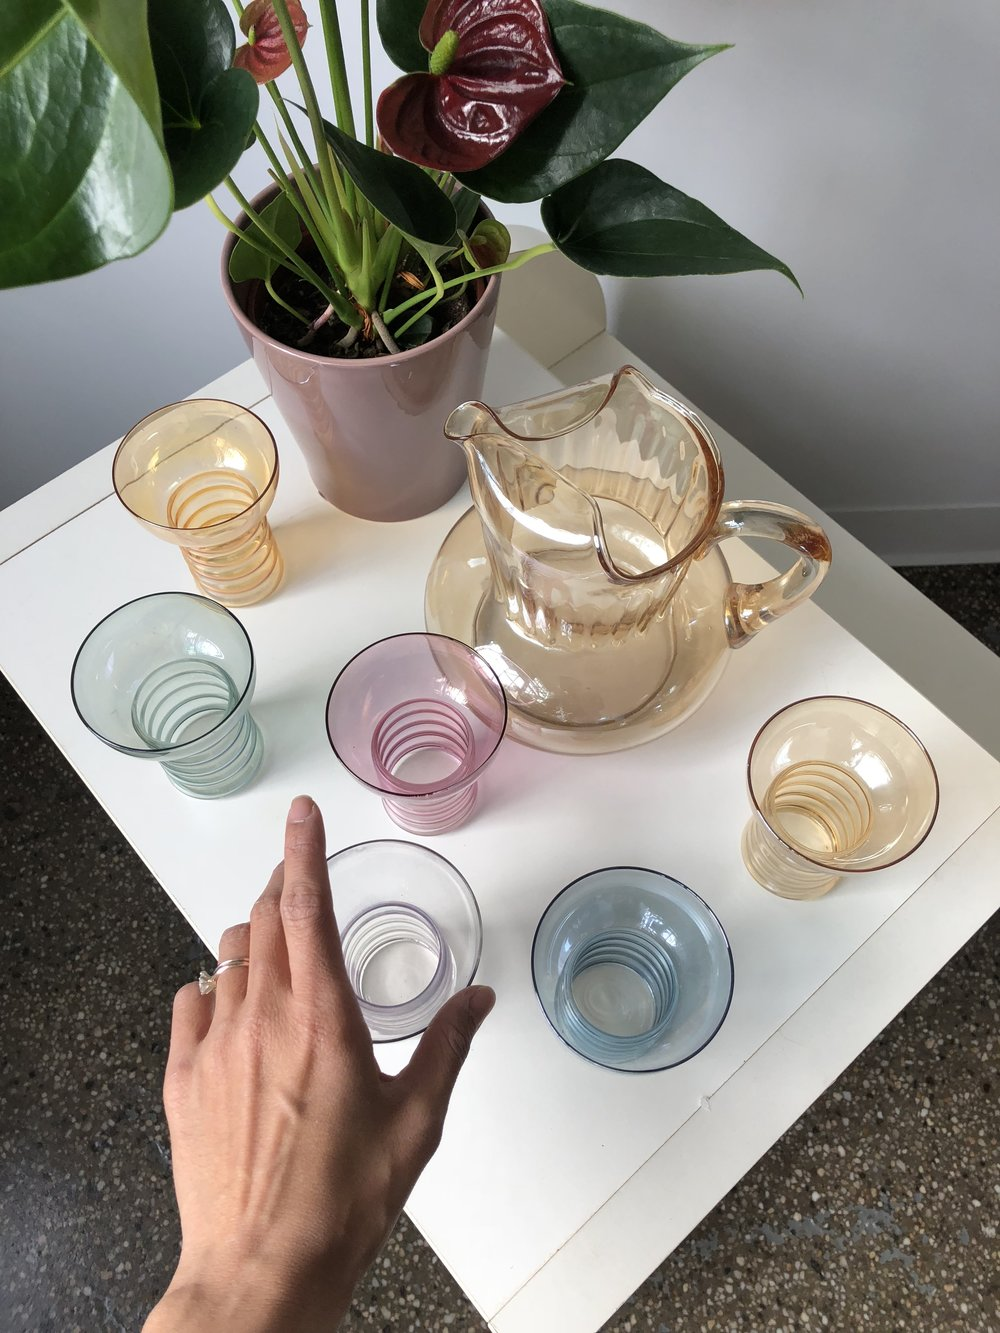 1950s Iridescent Glassware Pitcher Set, $75